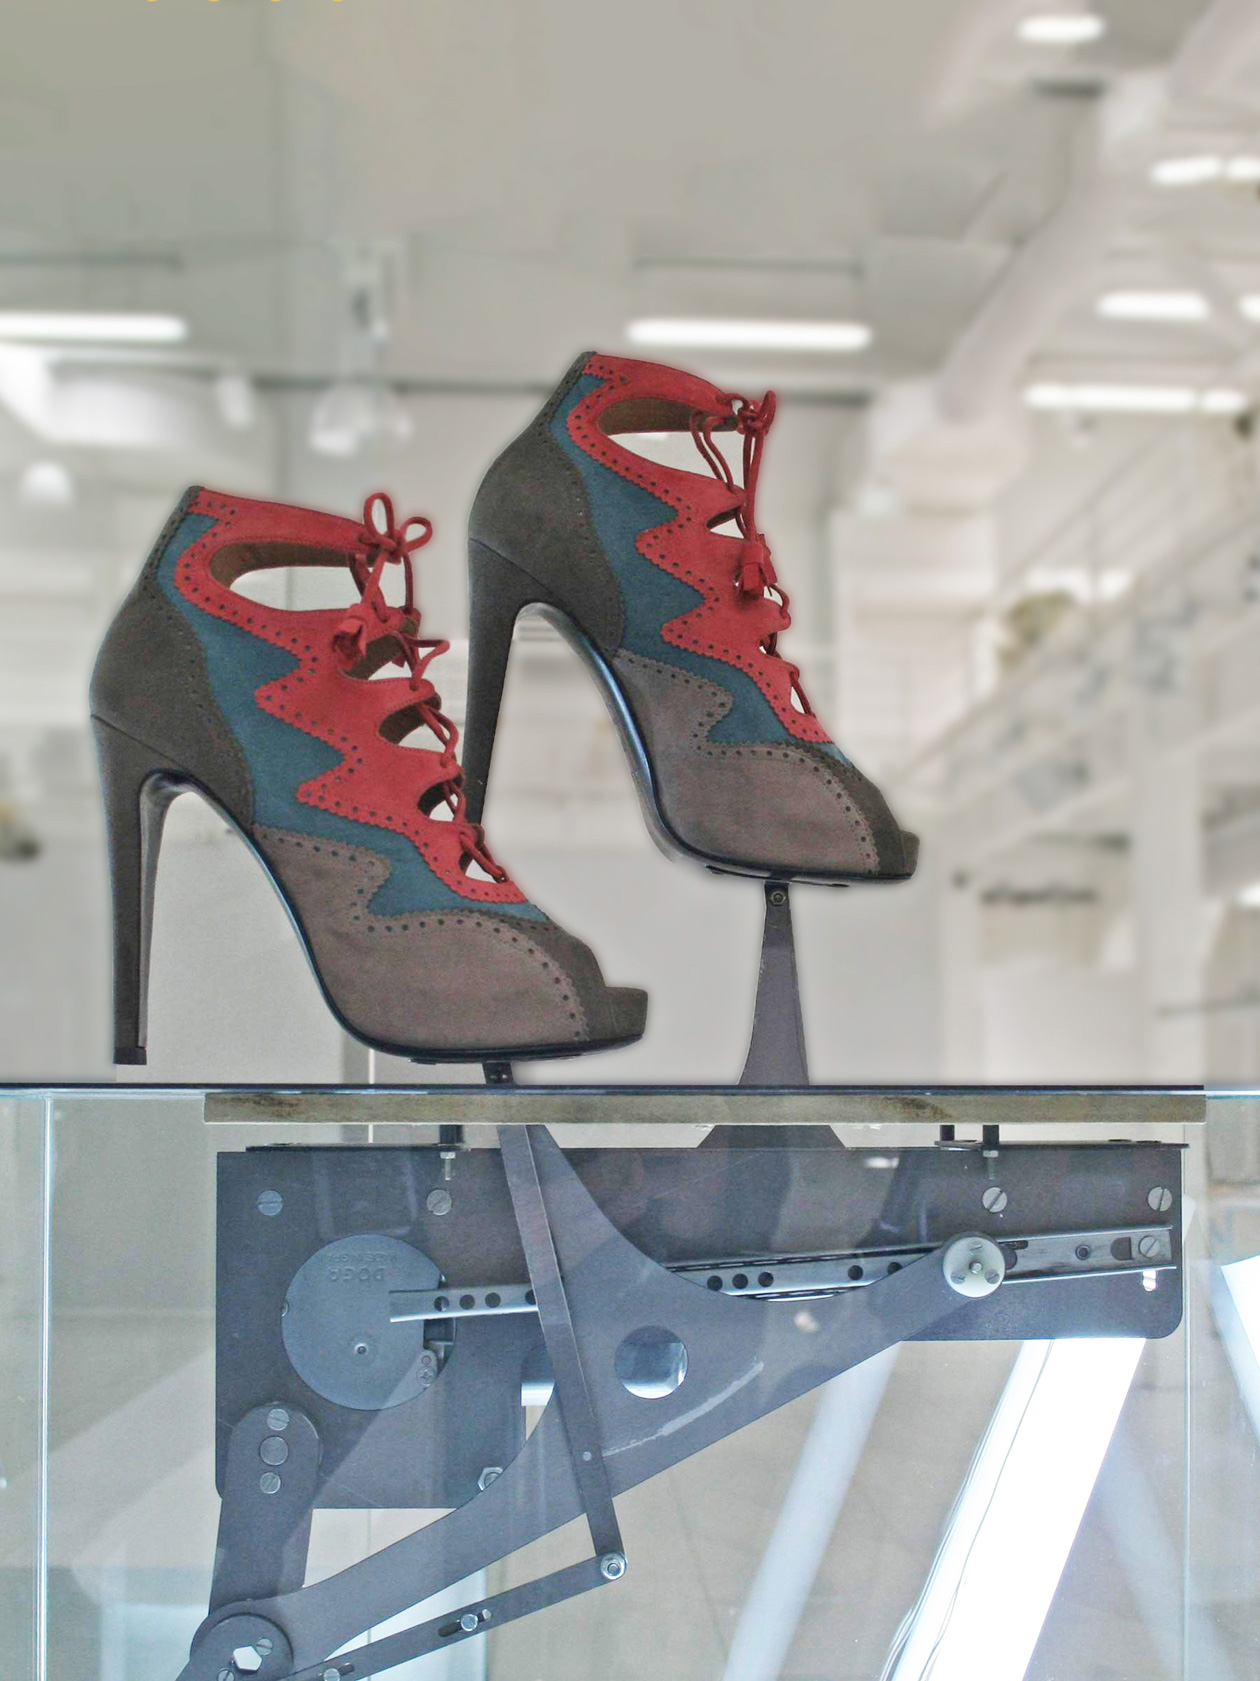 kinetic sculpture walking shoes for Hermès